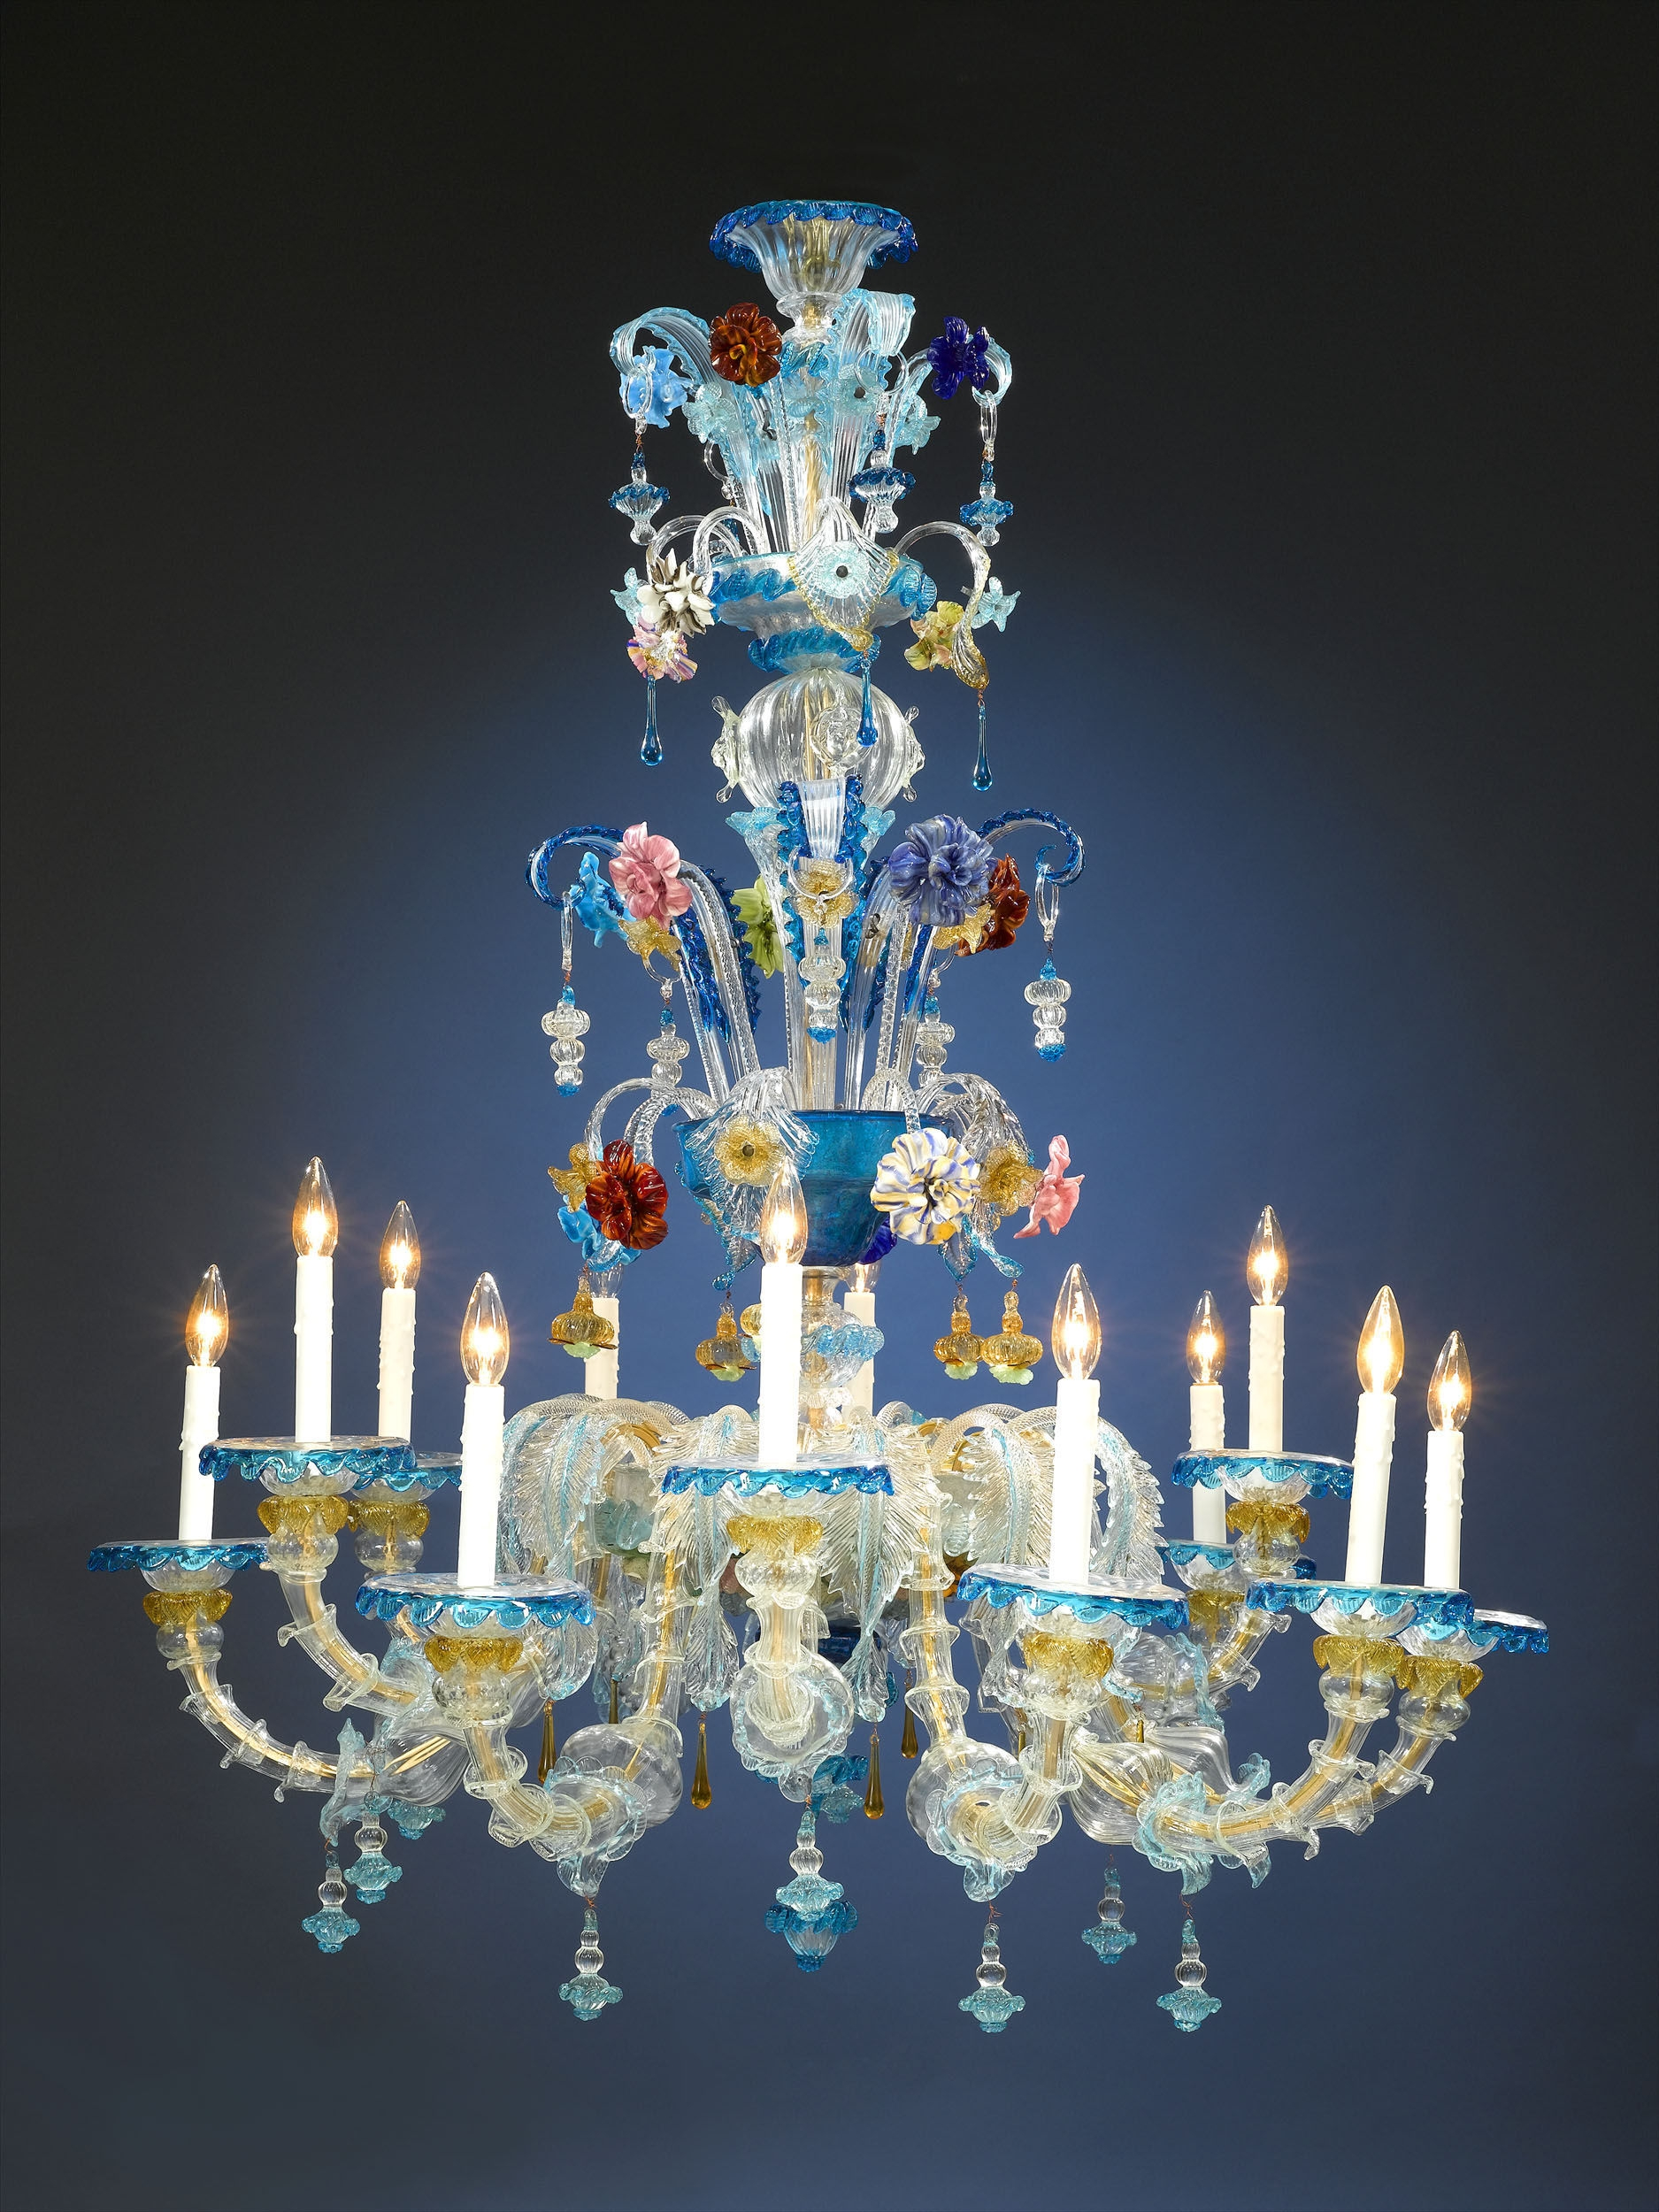 15 Murano Chandelier Replica Chandelier Ideas